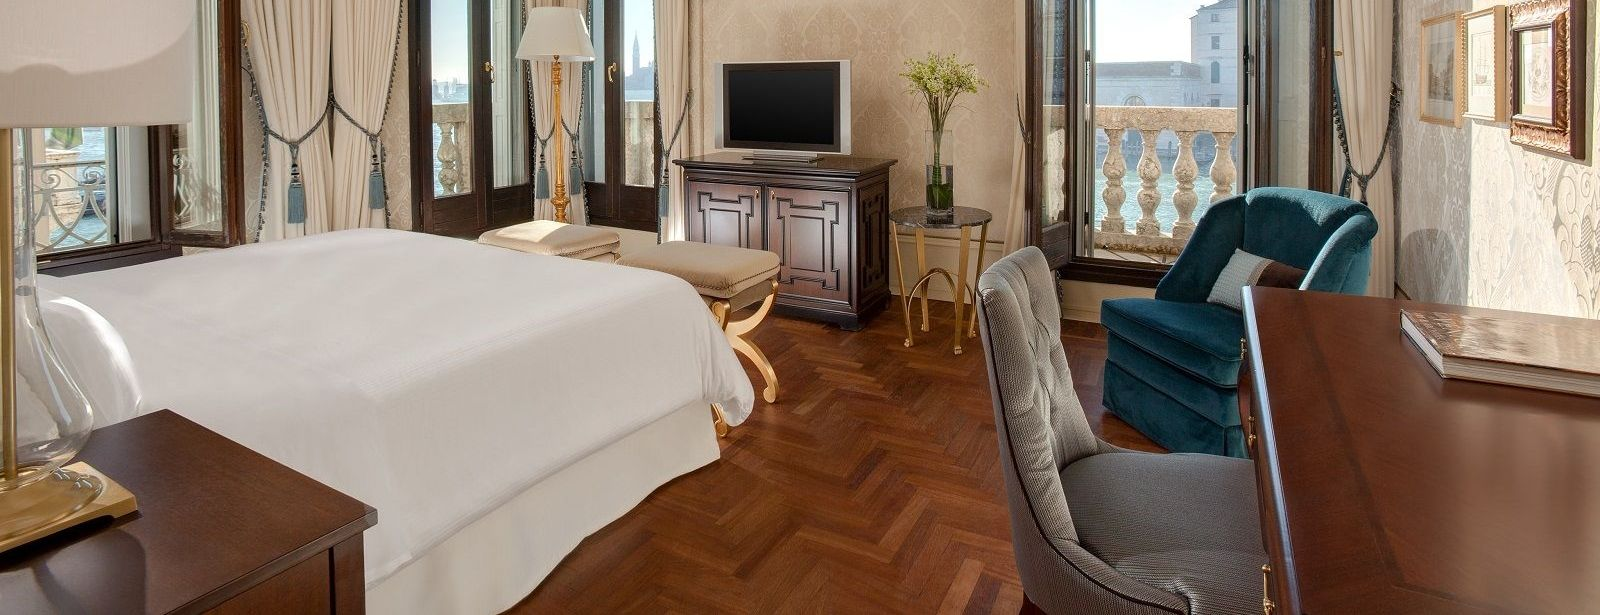 Image of the Stunning Grand Canal room at The Westin Europa & Regina, Venice